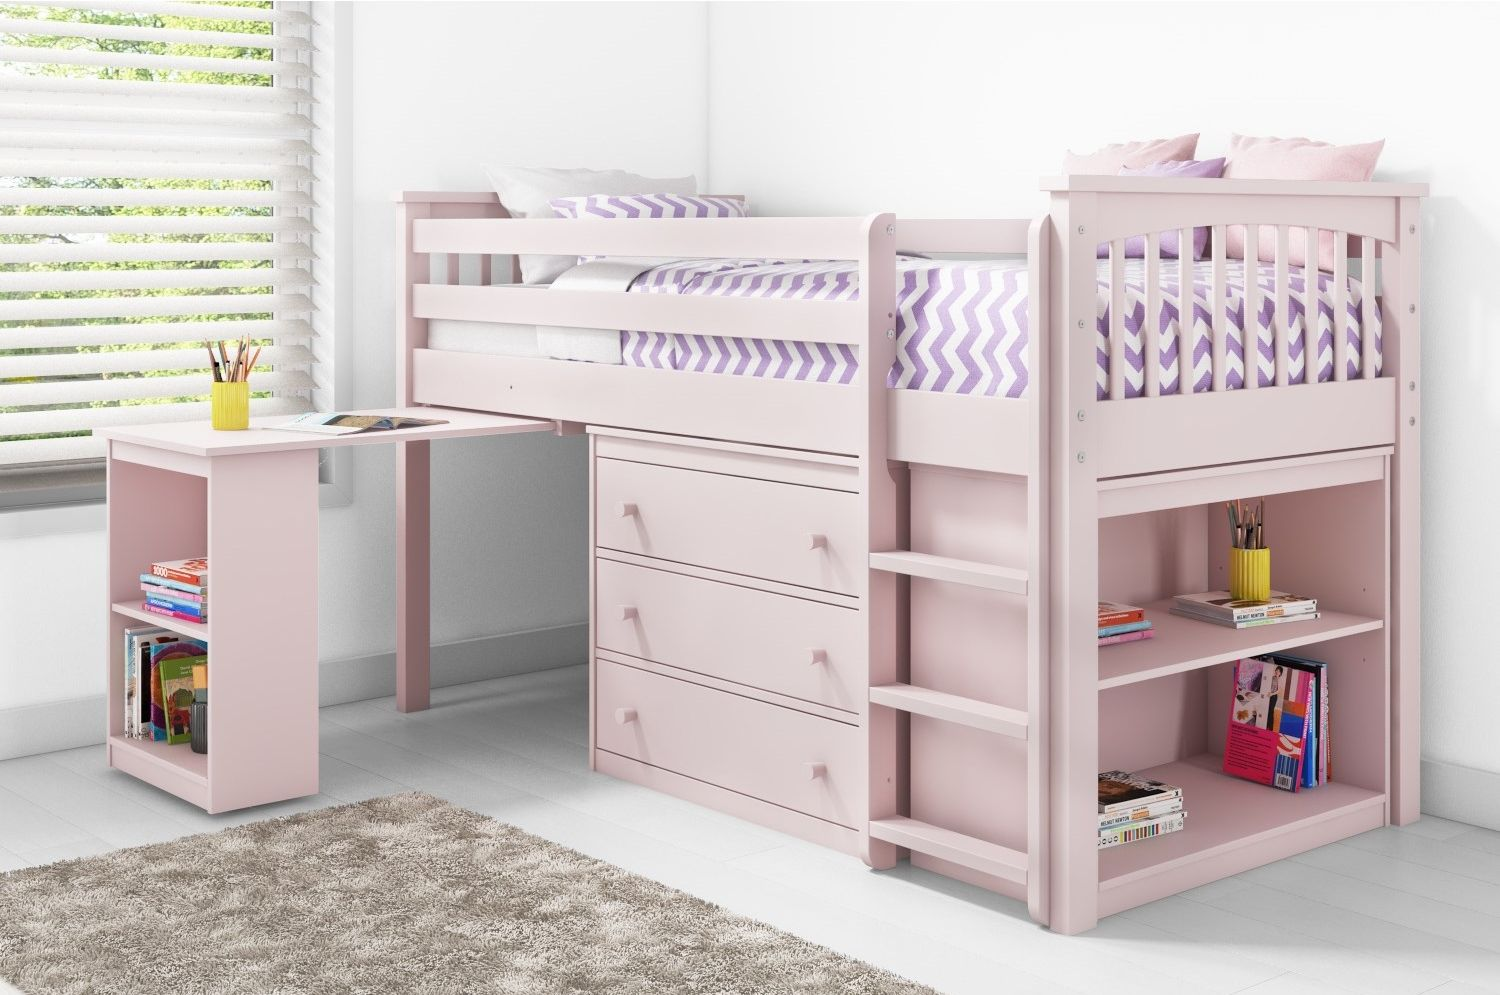 Tuffing loft bed ideas  Classic and compact  WINDERMERE mid sleepers are perfect for any